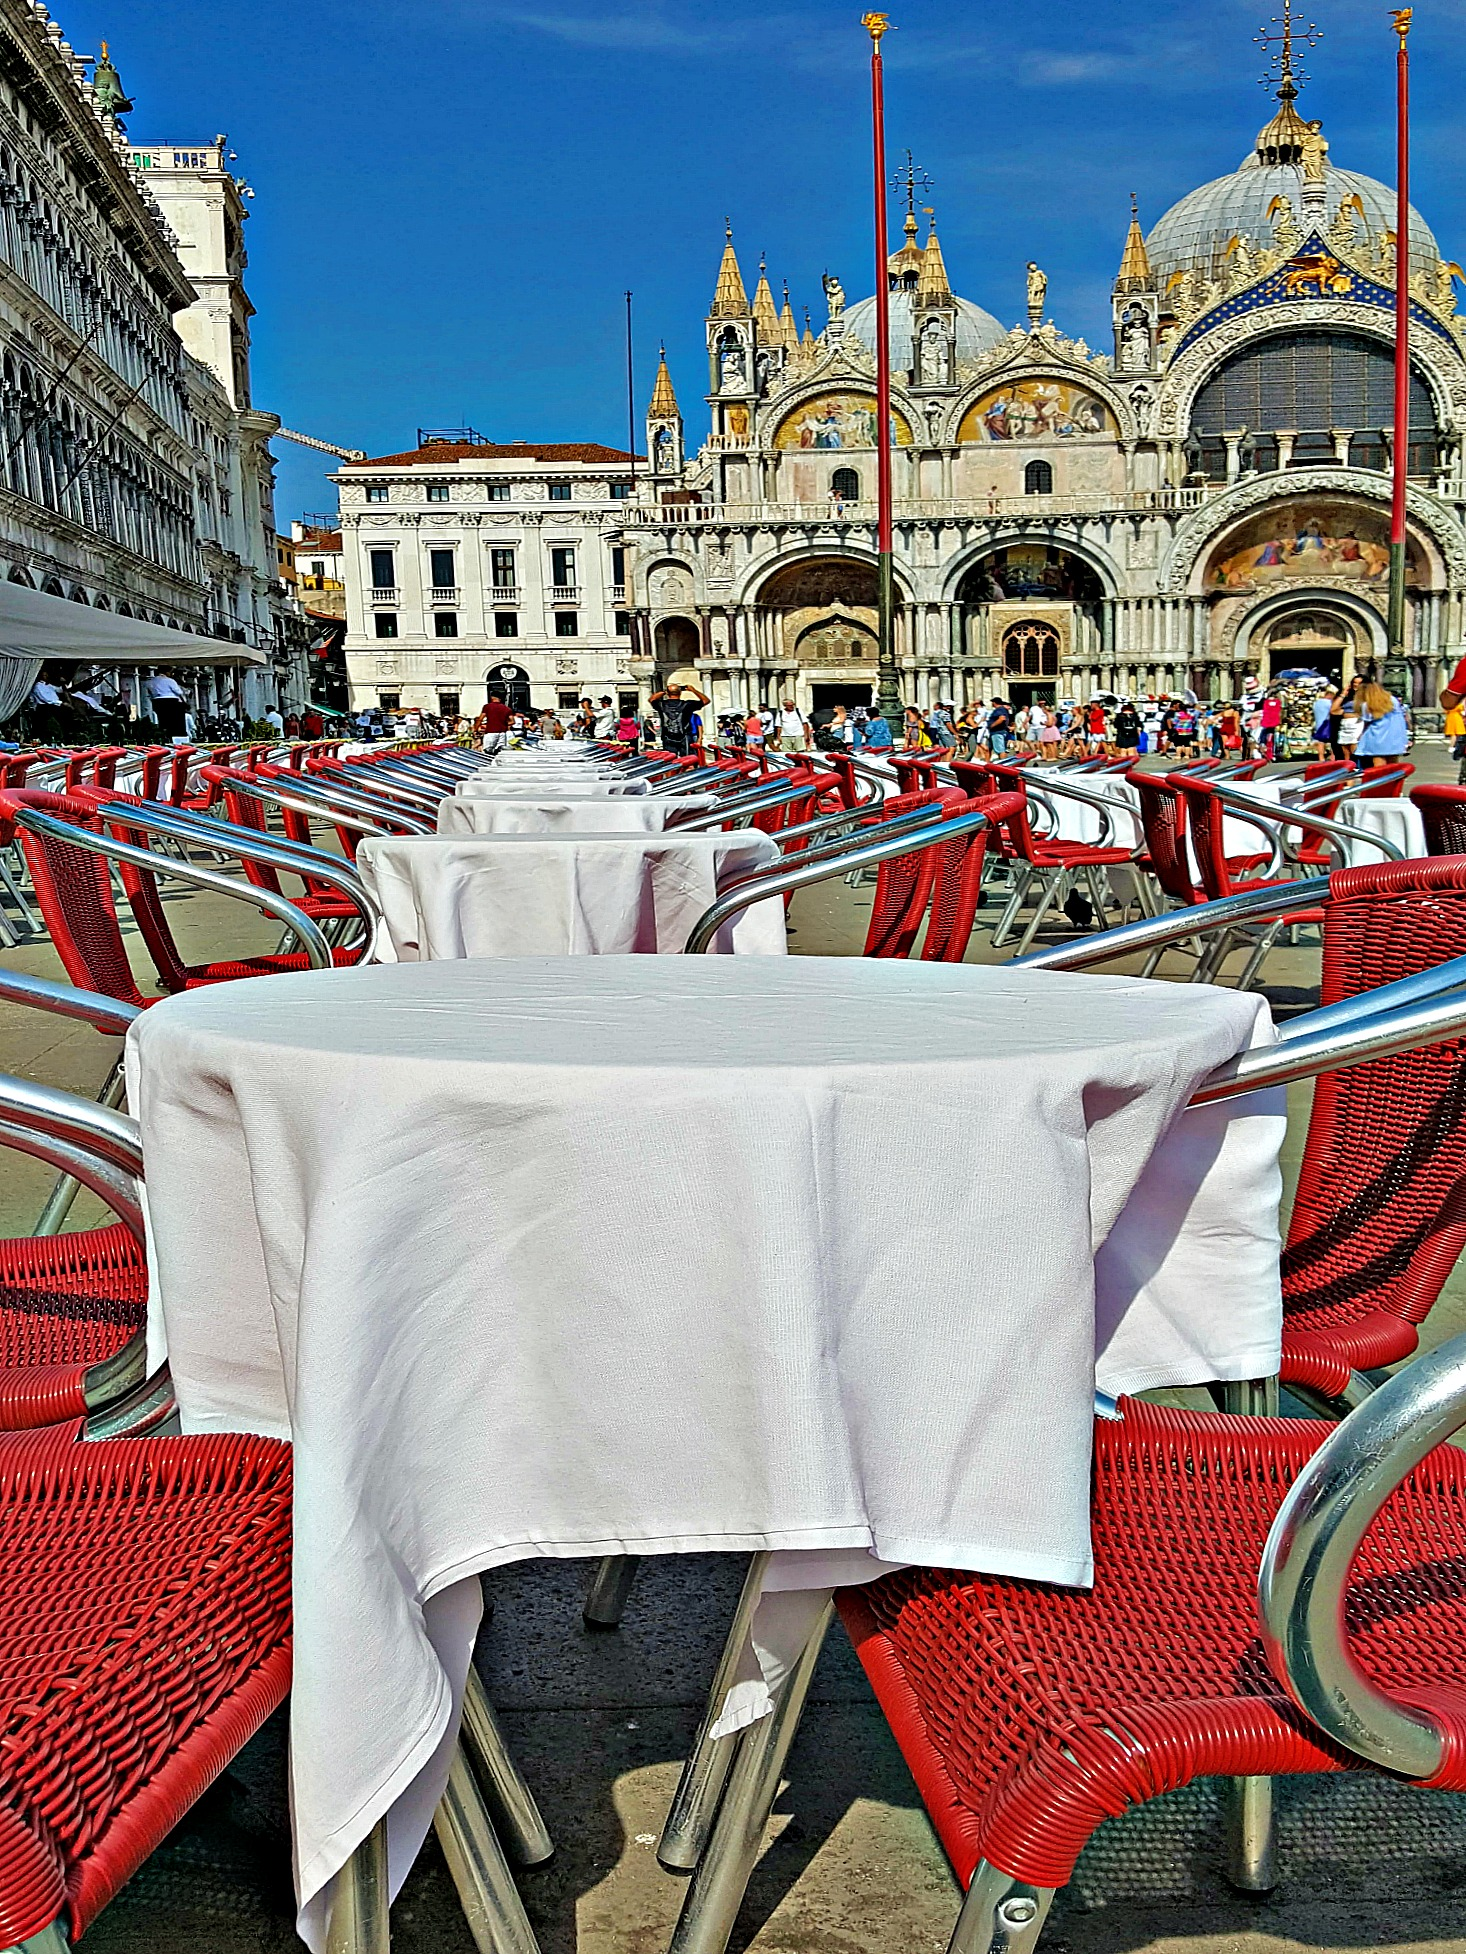 Piazza San Marco in Venice. - red and white tablecloths.